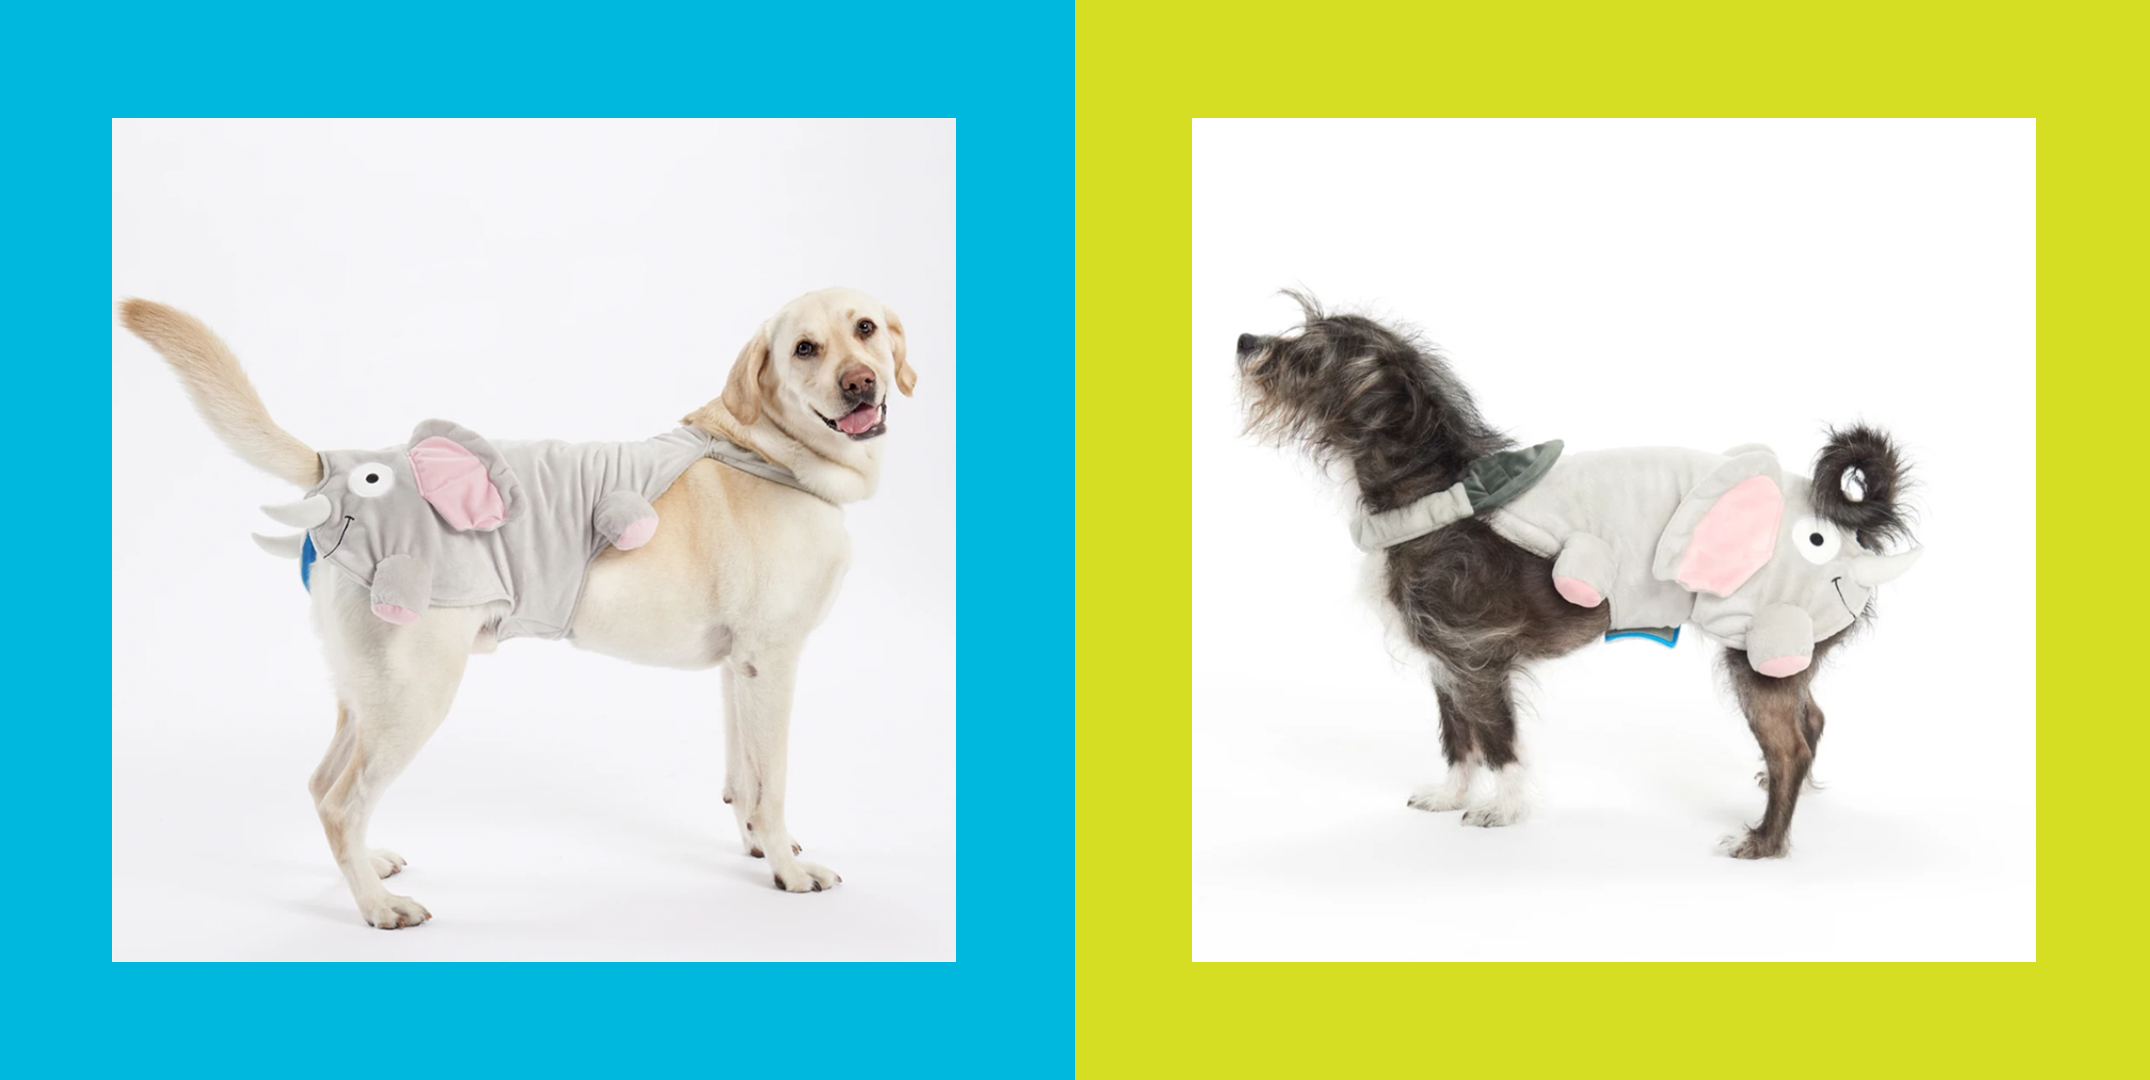 Please Feast Your Eyes on This Halloween Costume for Your Dog's Butt